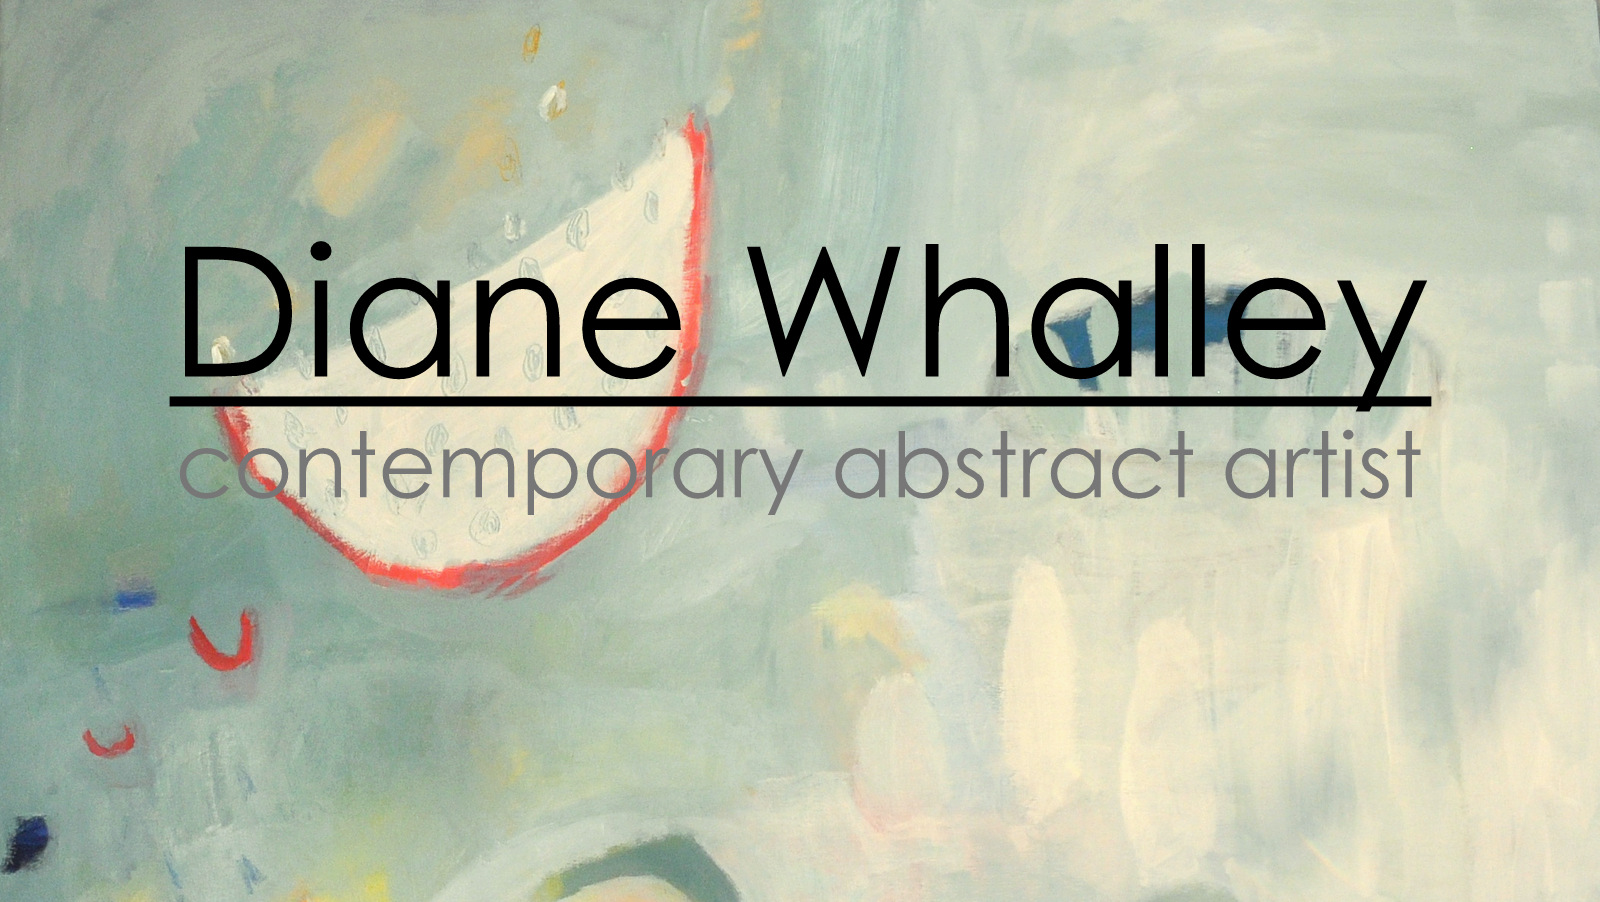 Diane Whalley